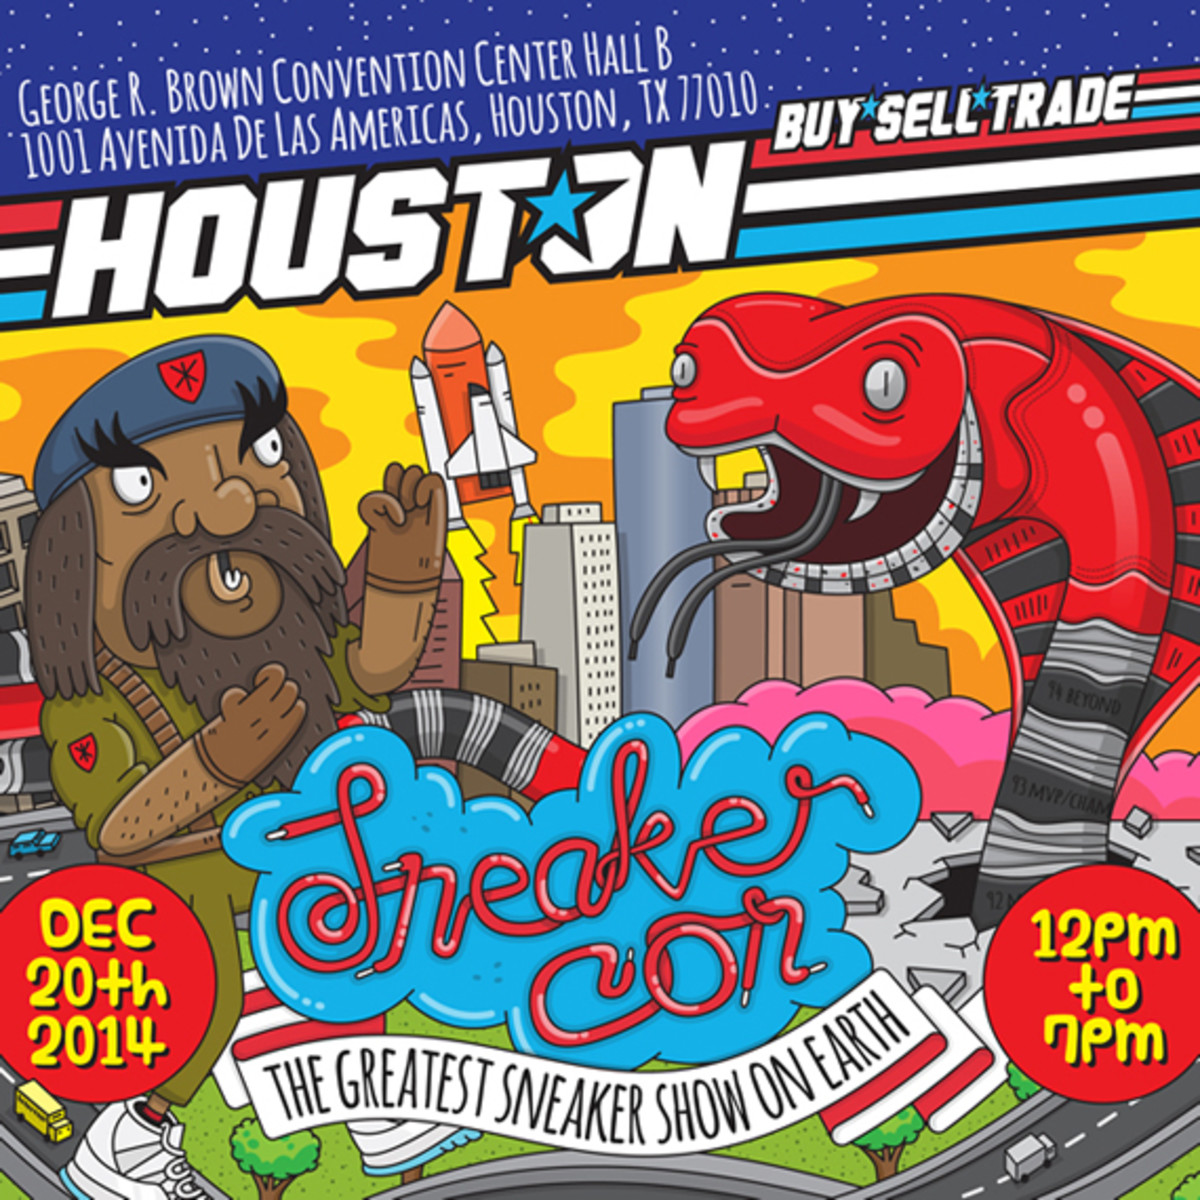 sneaker-con-houston-december-2014-a